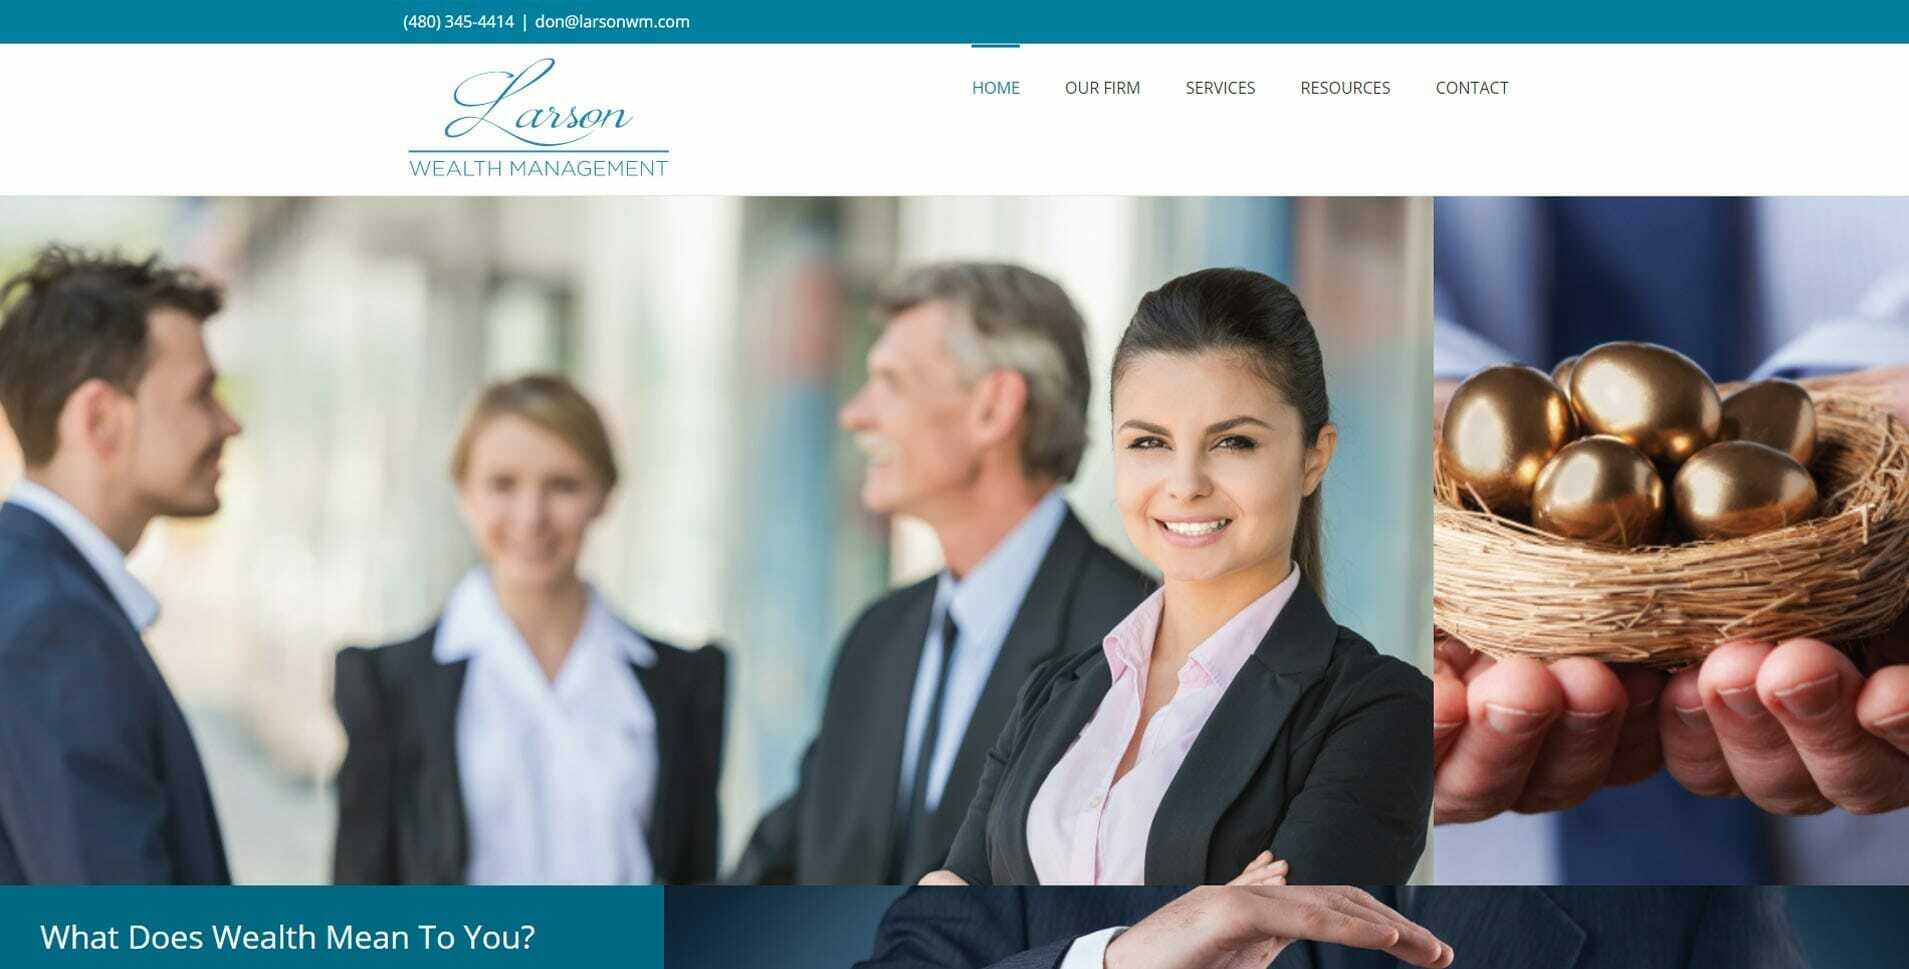 Larson Wealth Management